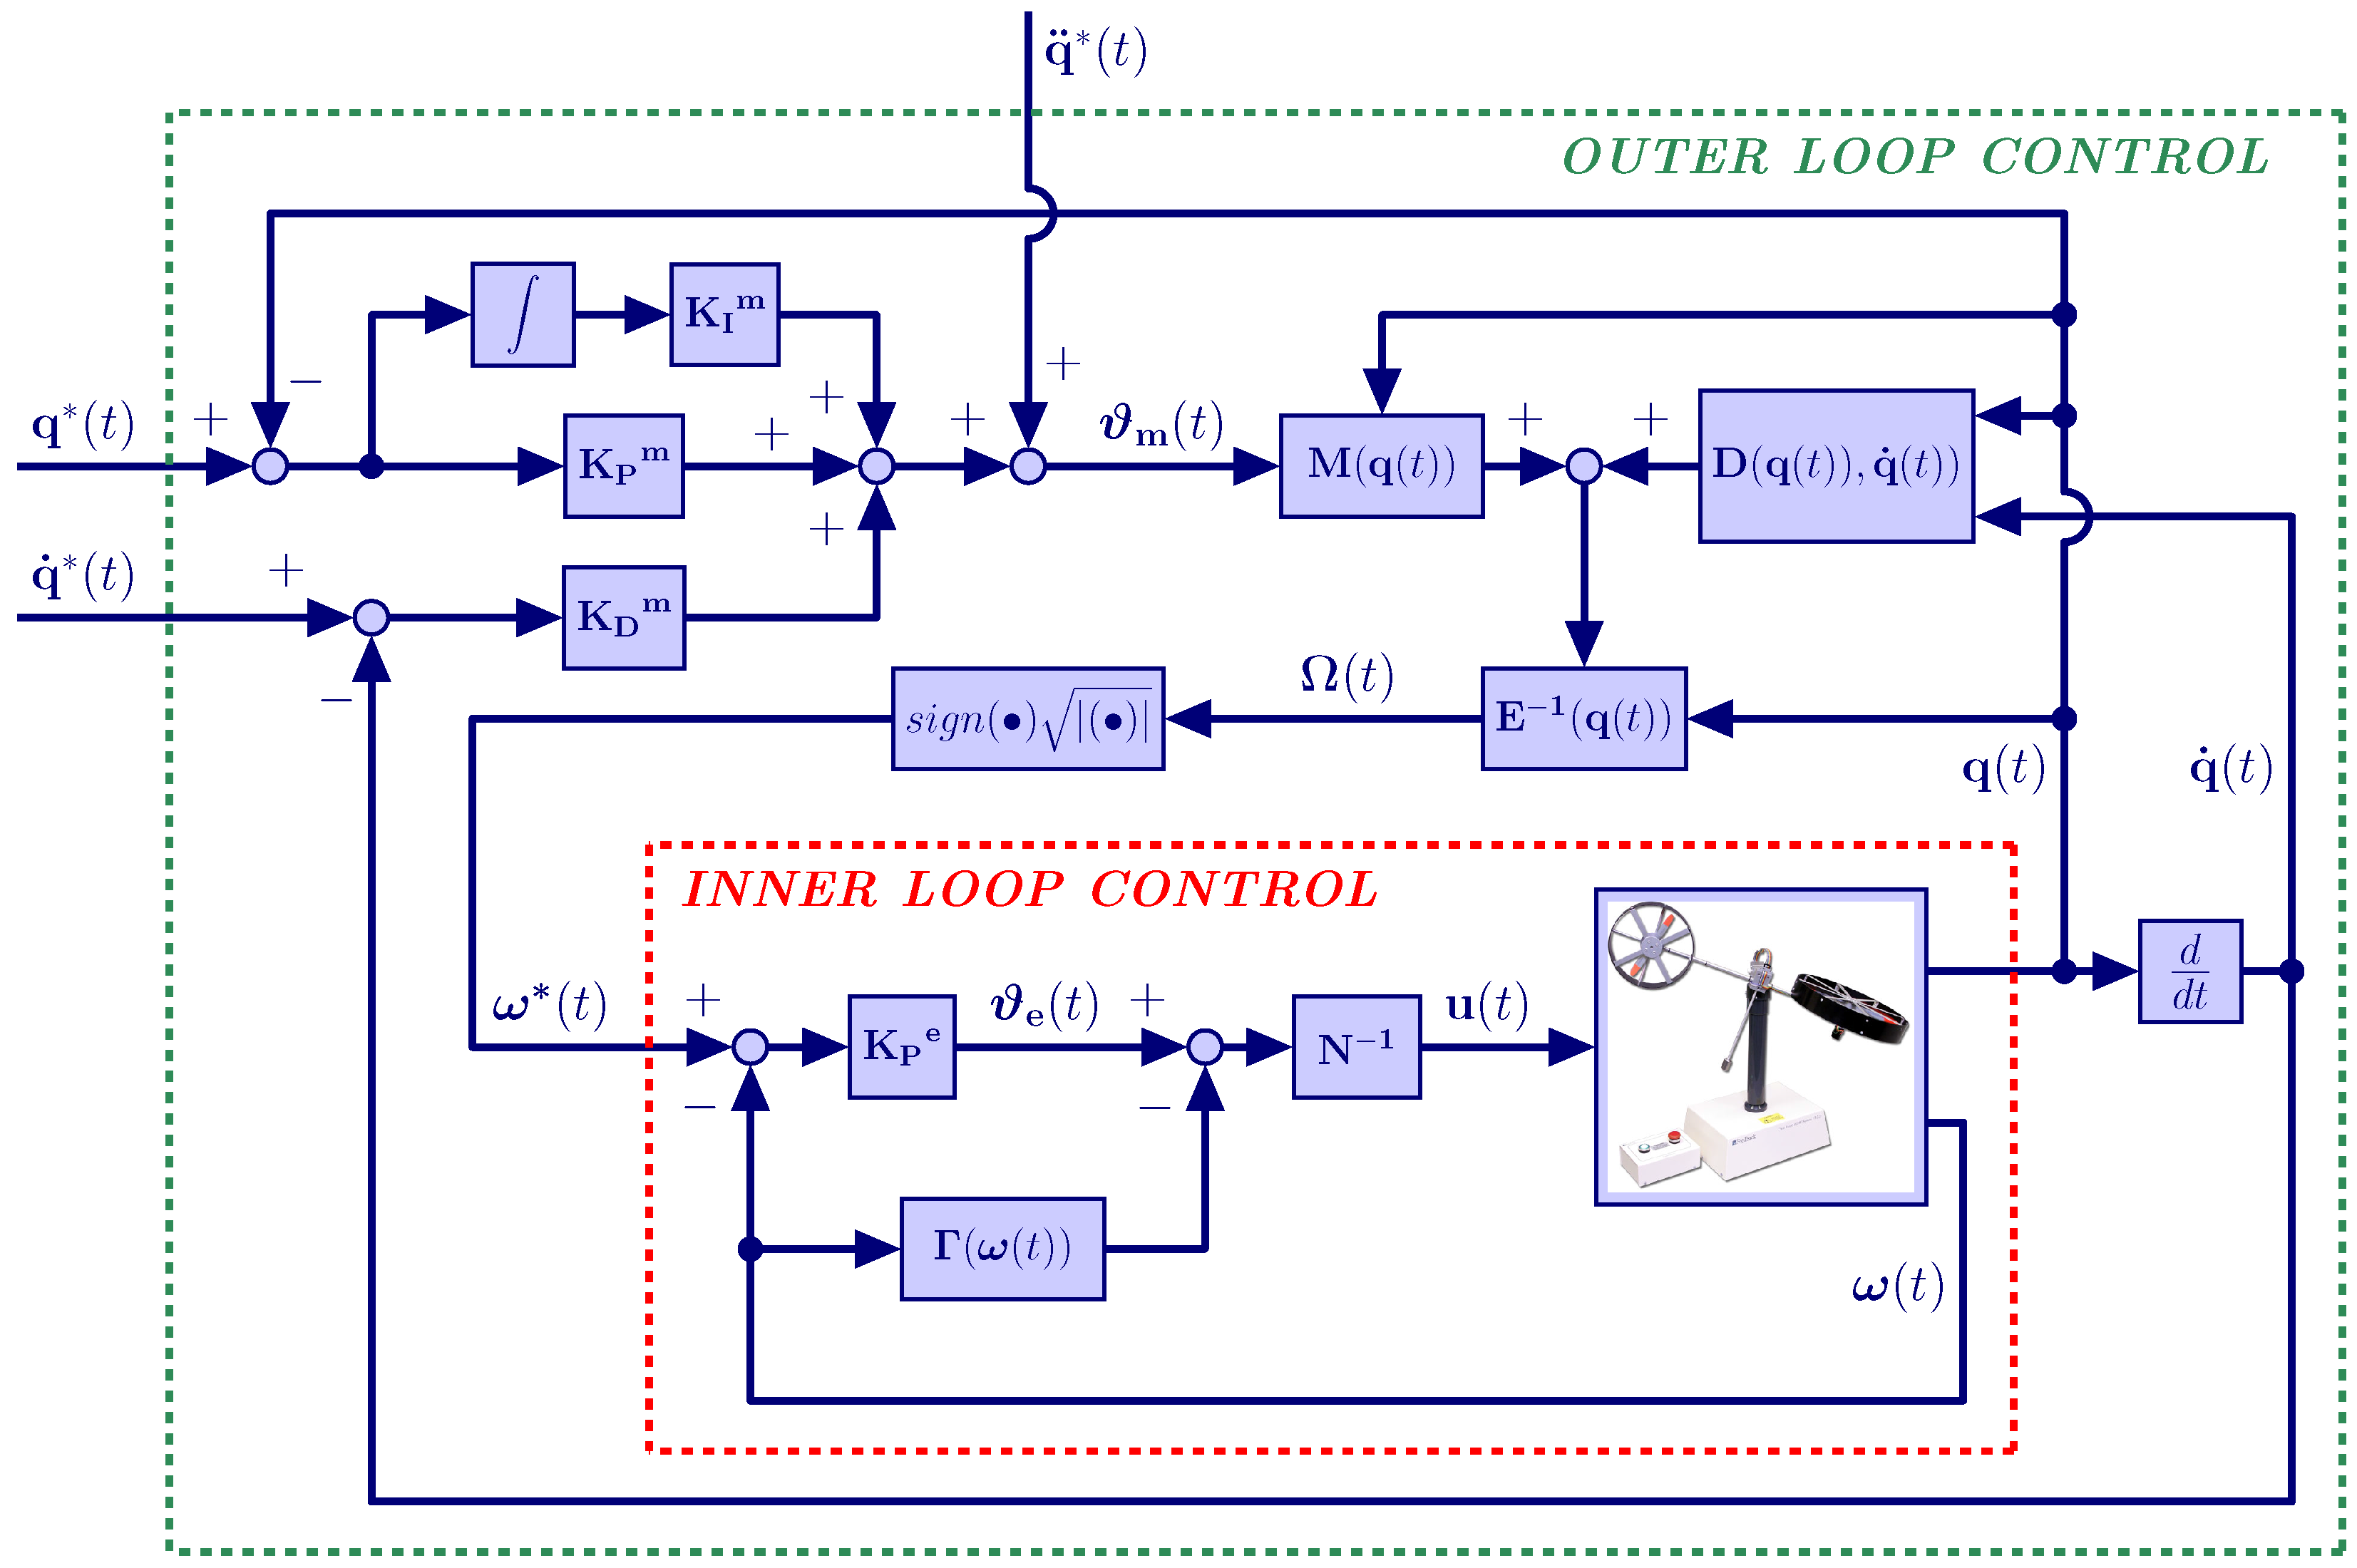 """twin rotor mimo system thesis This is to certify that the thesis titled """"optimal controller design for twin rotor mimo system """", by ankesh kumar agrawal , submitted to the national institute of technology, rourkela for the award of degree of master of technology with specialization in control ."""